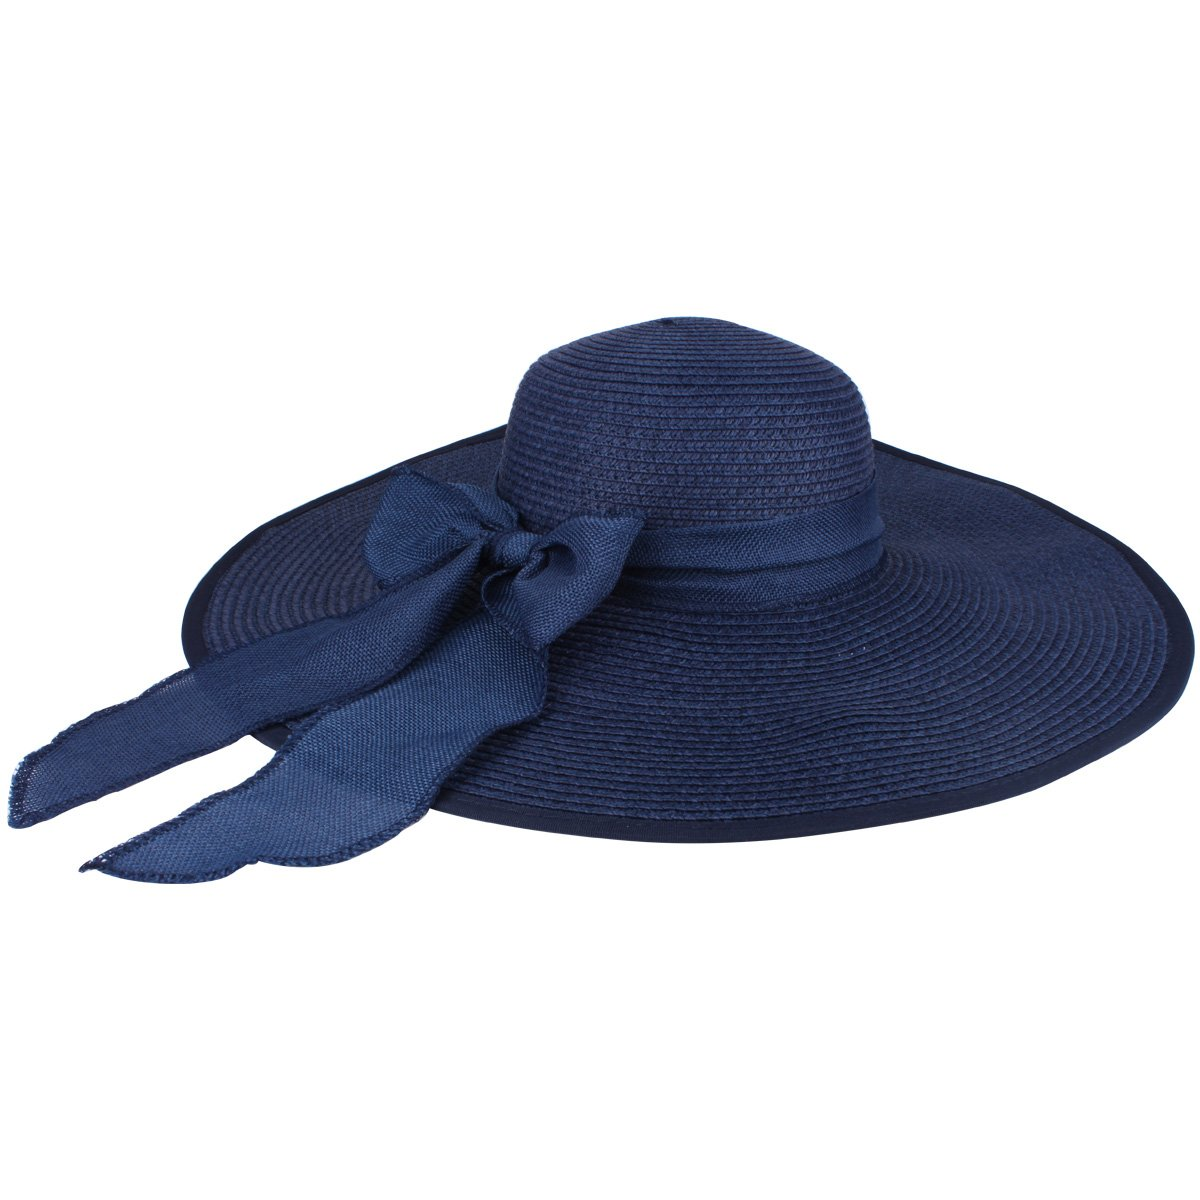 Bowknot with Wide Brim Paper Weaved Foldable Beach Sun Hats Straw Floppy Sun Hat